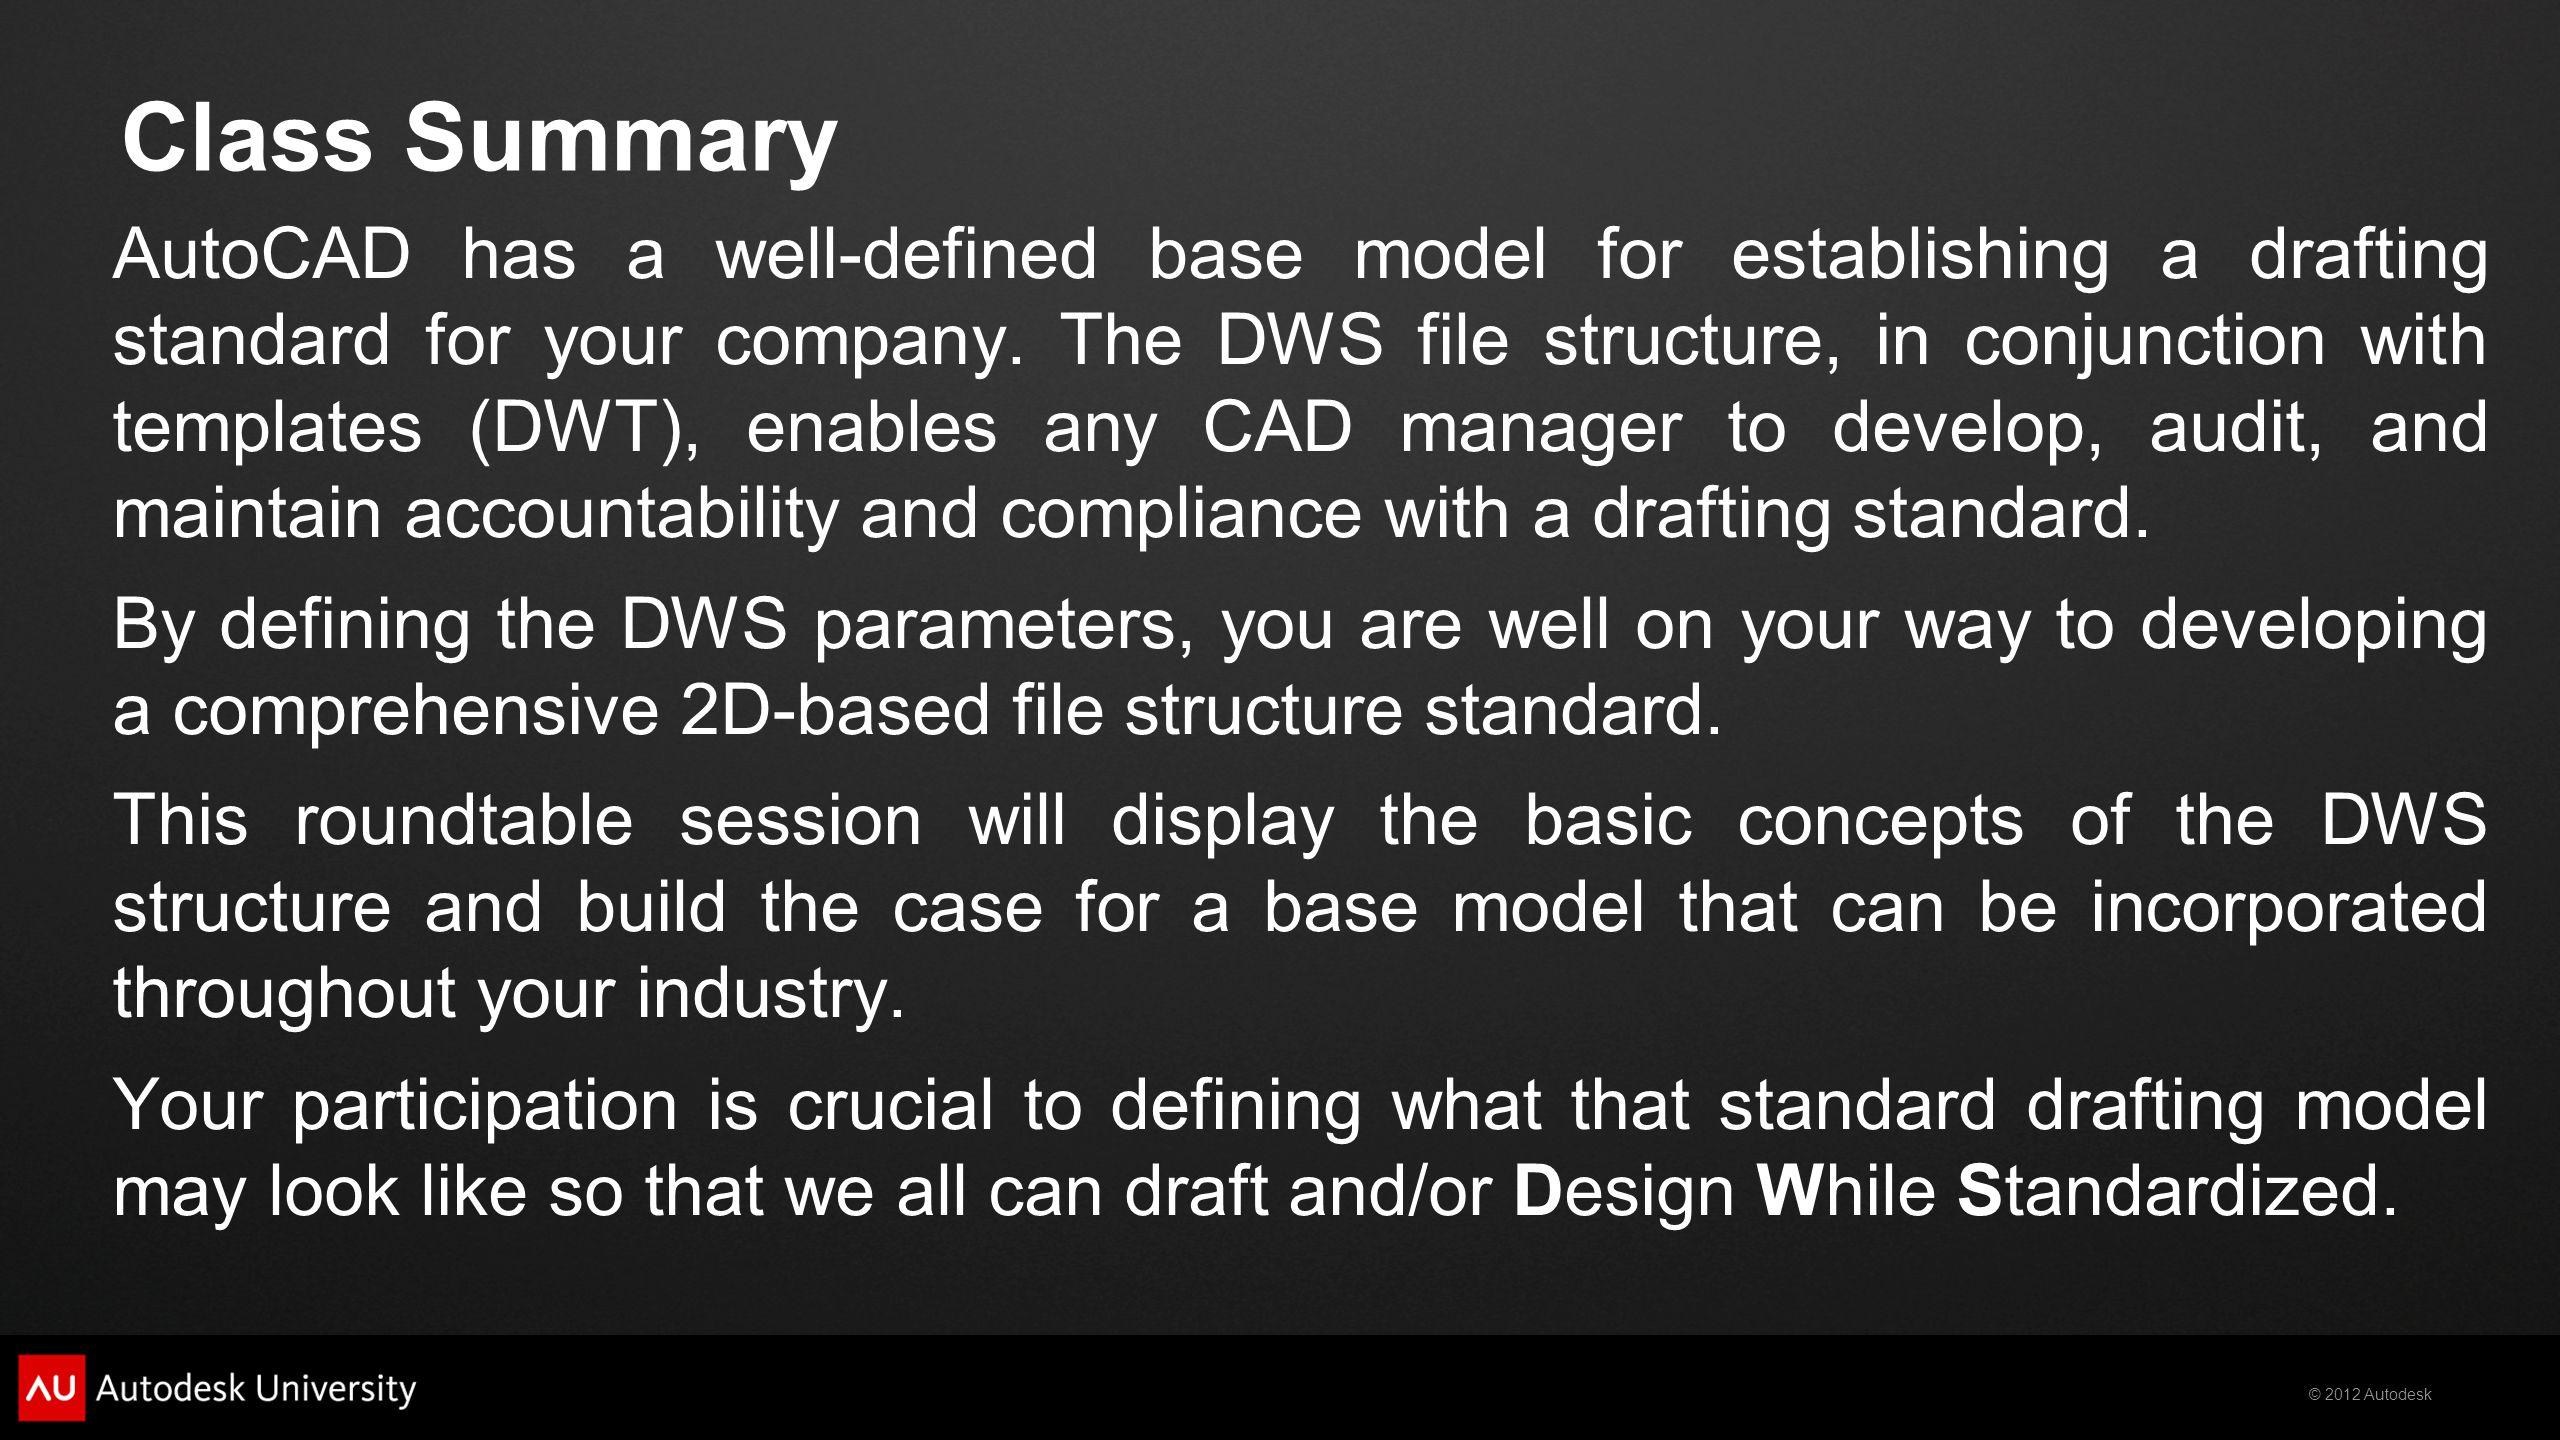 © 2012 Autodesk Class Summary AutoCAD has a well-defined base model for establishing a drafting standard for your company. The DWS file structure, in